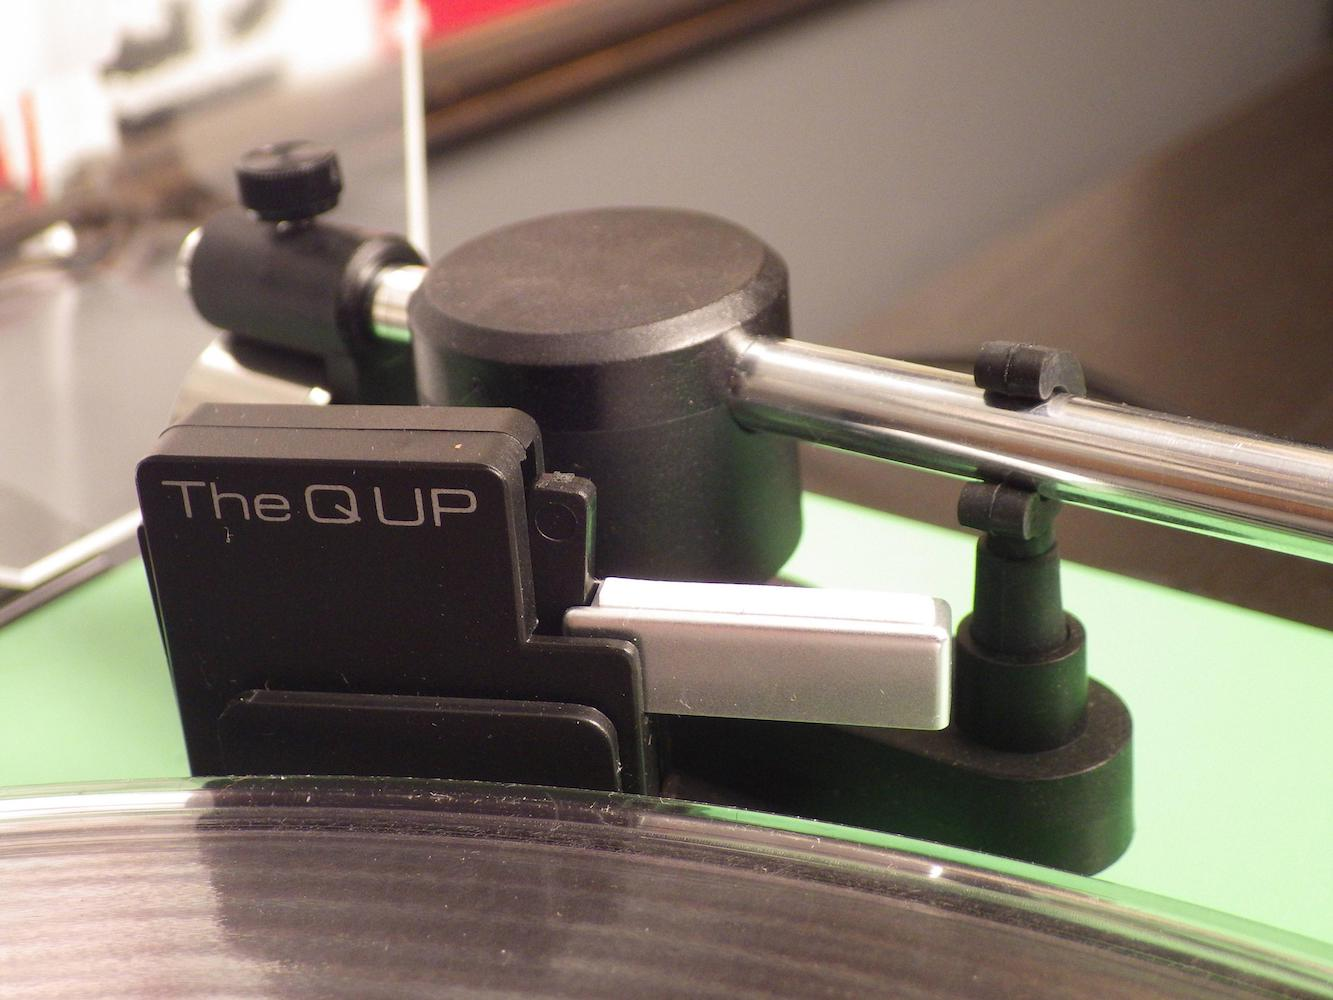 u-Turn Orbit Plus Modern Turntable